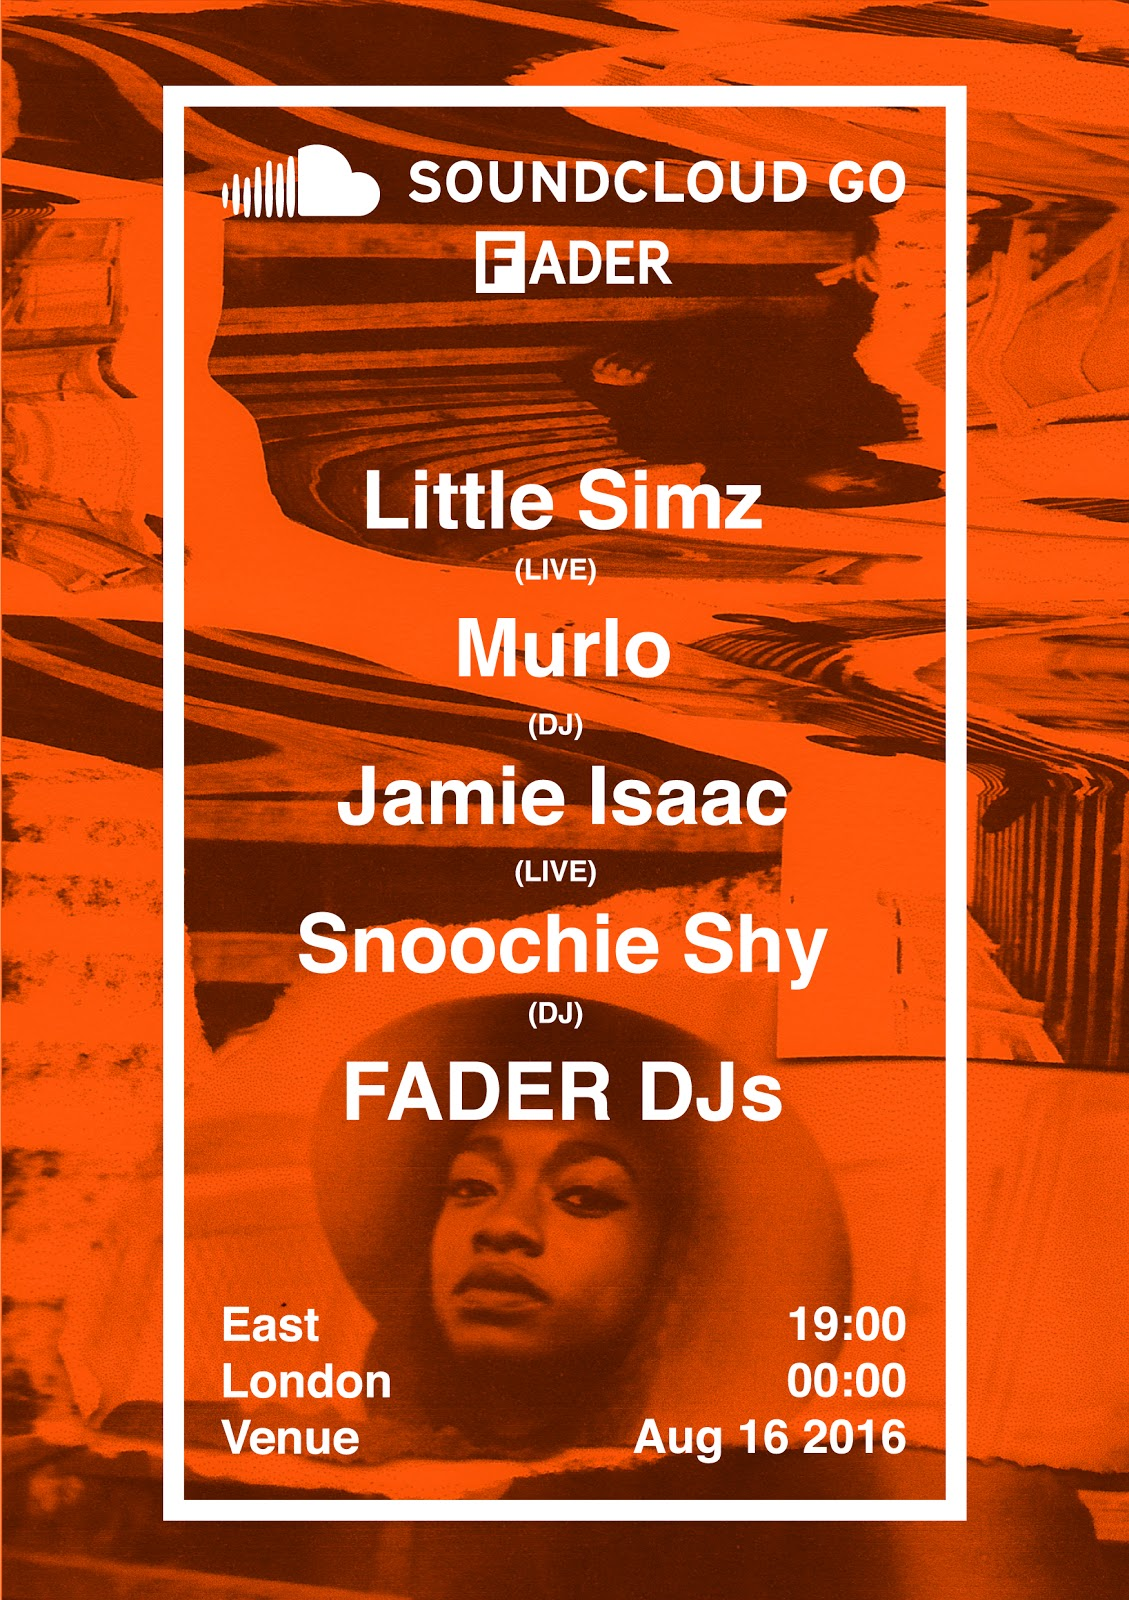 237100 fader 2016 scgo littlesimz eventartwork final 2fb368 original 1487608165